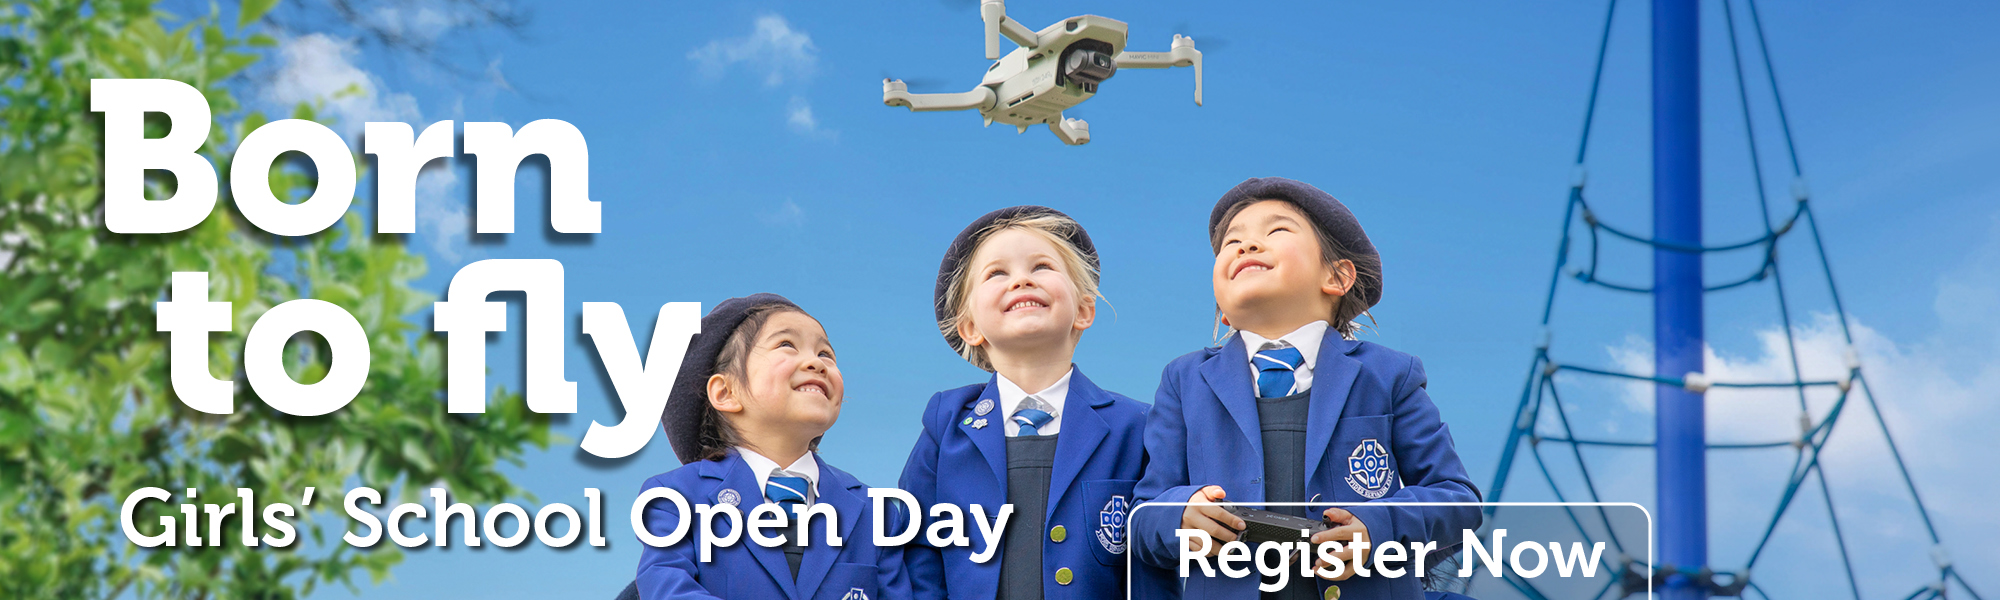 j10490 - Saint Kentigern - Girls' School Open Day SK Web Banners - Carousel 2000pxw x 600pxh - draft_051.jpg